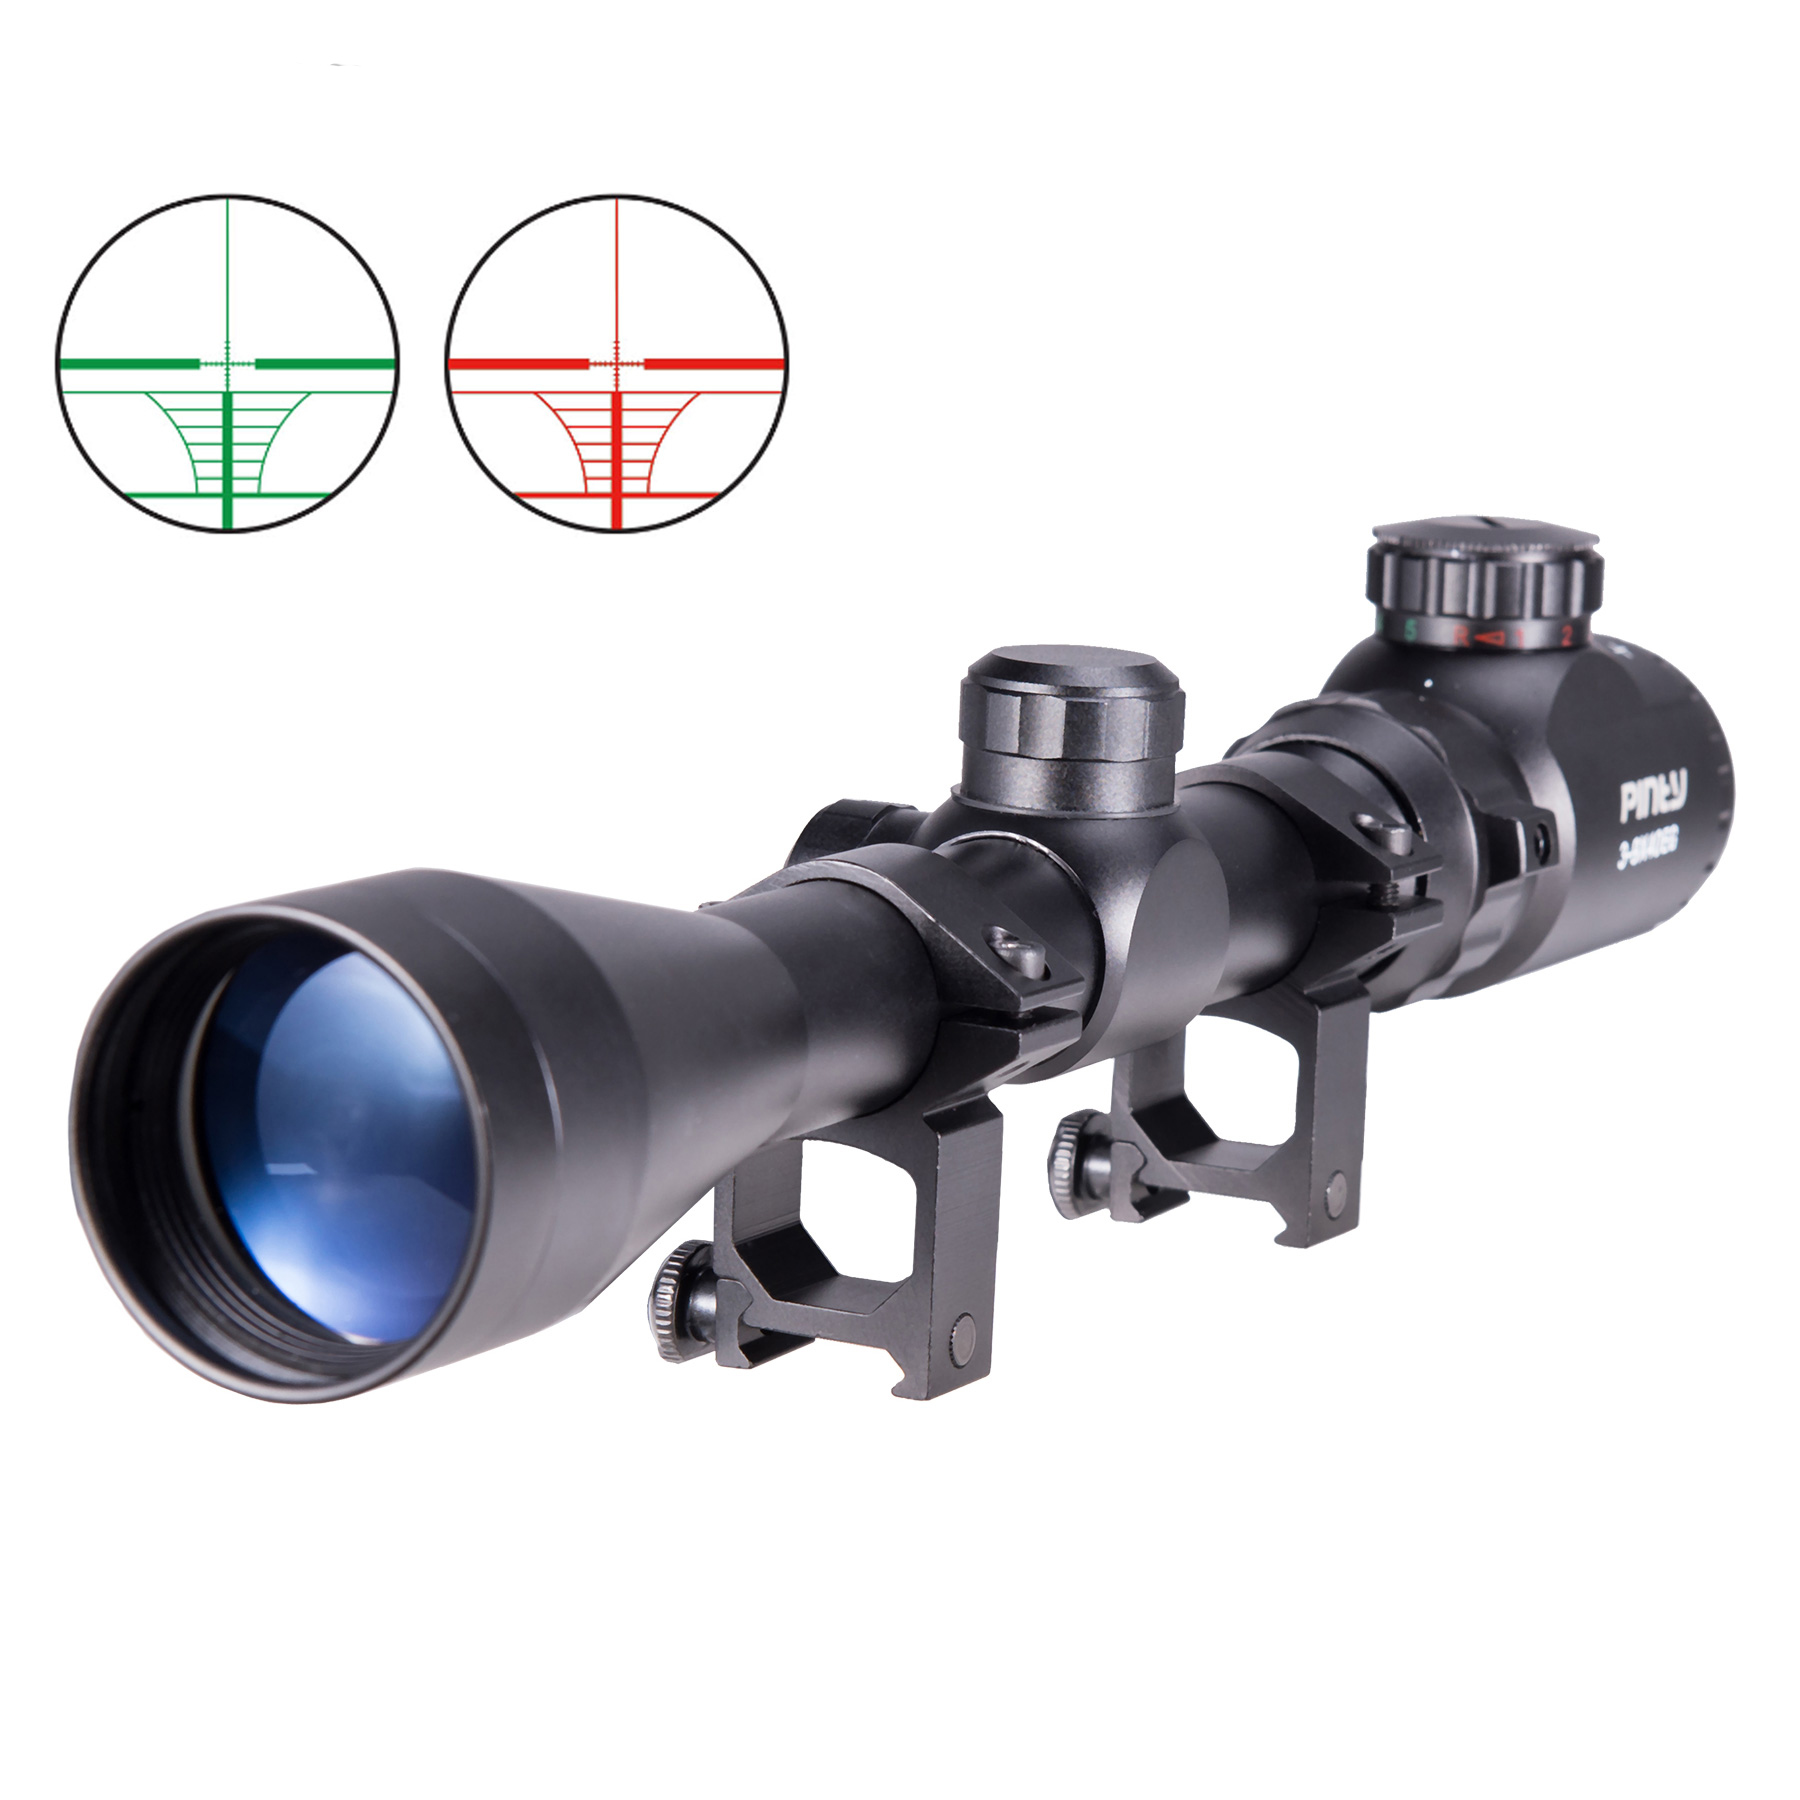 Pinty 3-9X40 Red Green Rangefinder Illuminated Optical Sniper Rifle Telescopic Scope by YKS